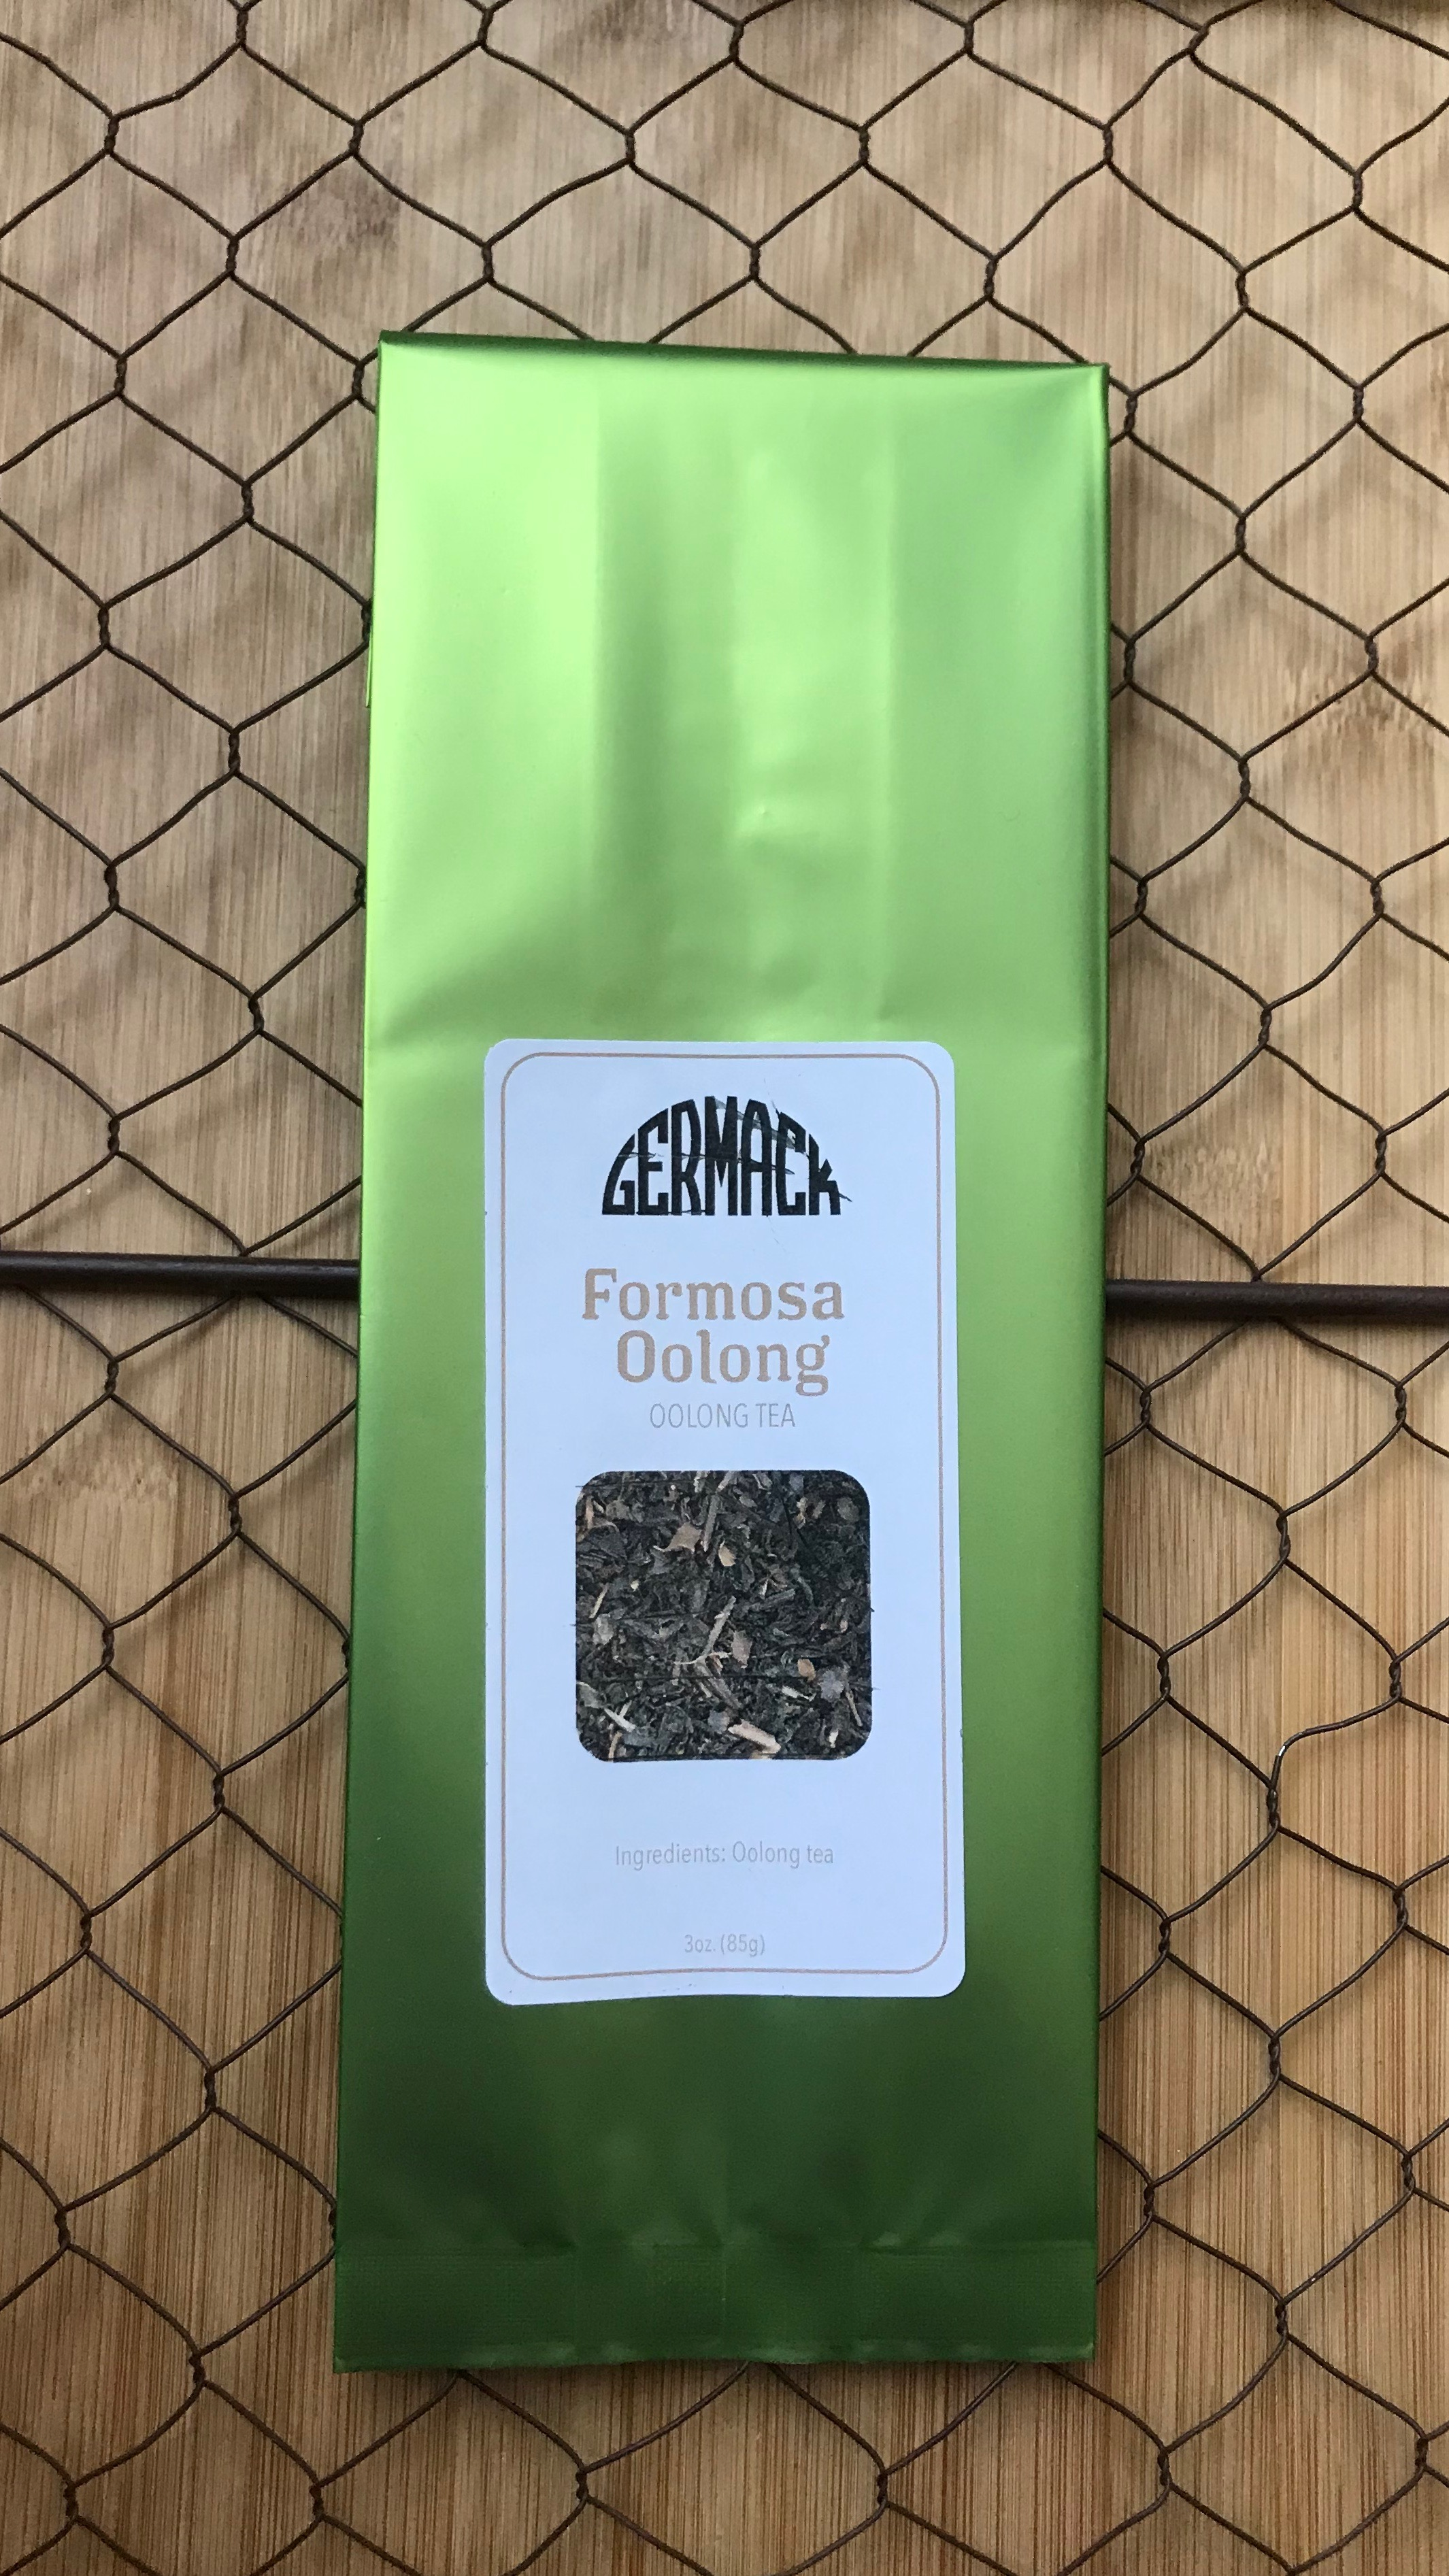 Picture Tea - Oolong Tea - Formosa Oolong - 3oz